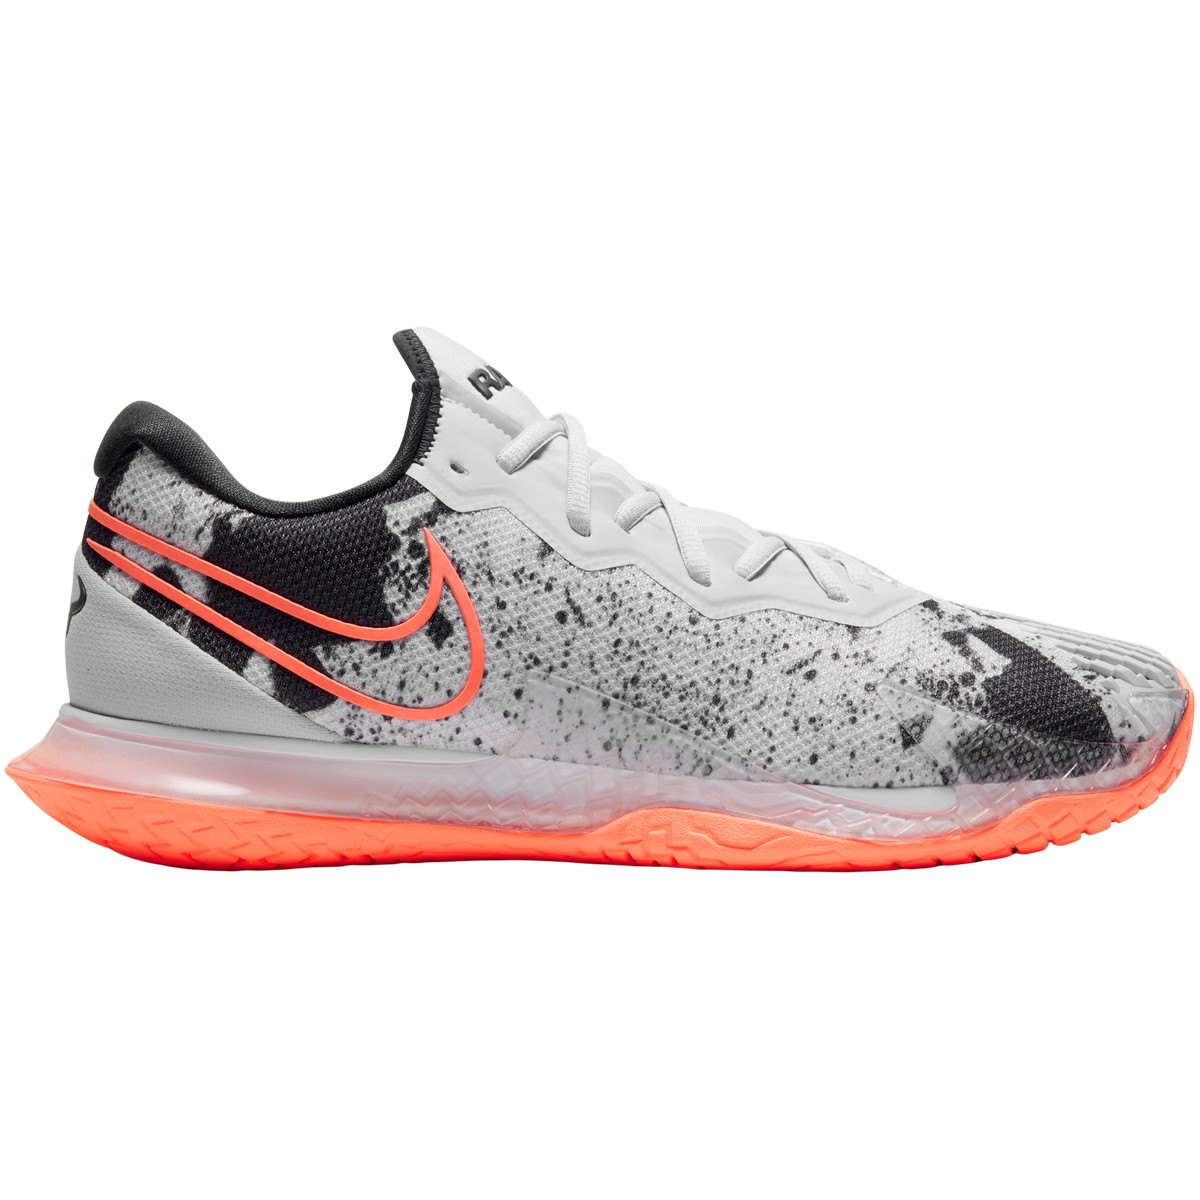 NIKE AIR ZOOM VAPOR CAGE 4 NADAL MIAMI LIMITED ALL COURT TENNISSCHOENEN